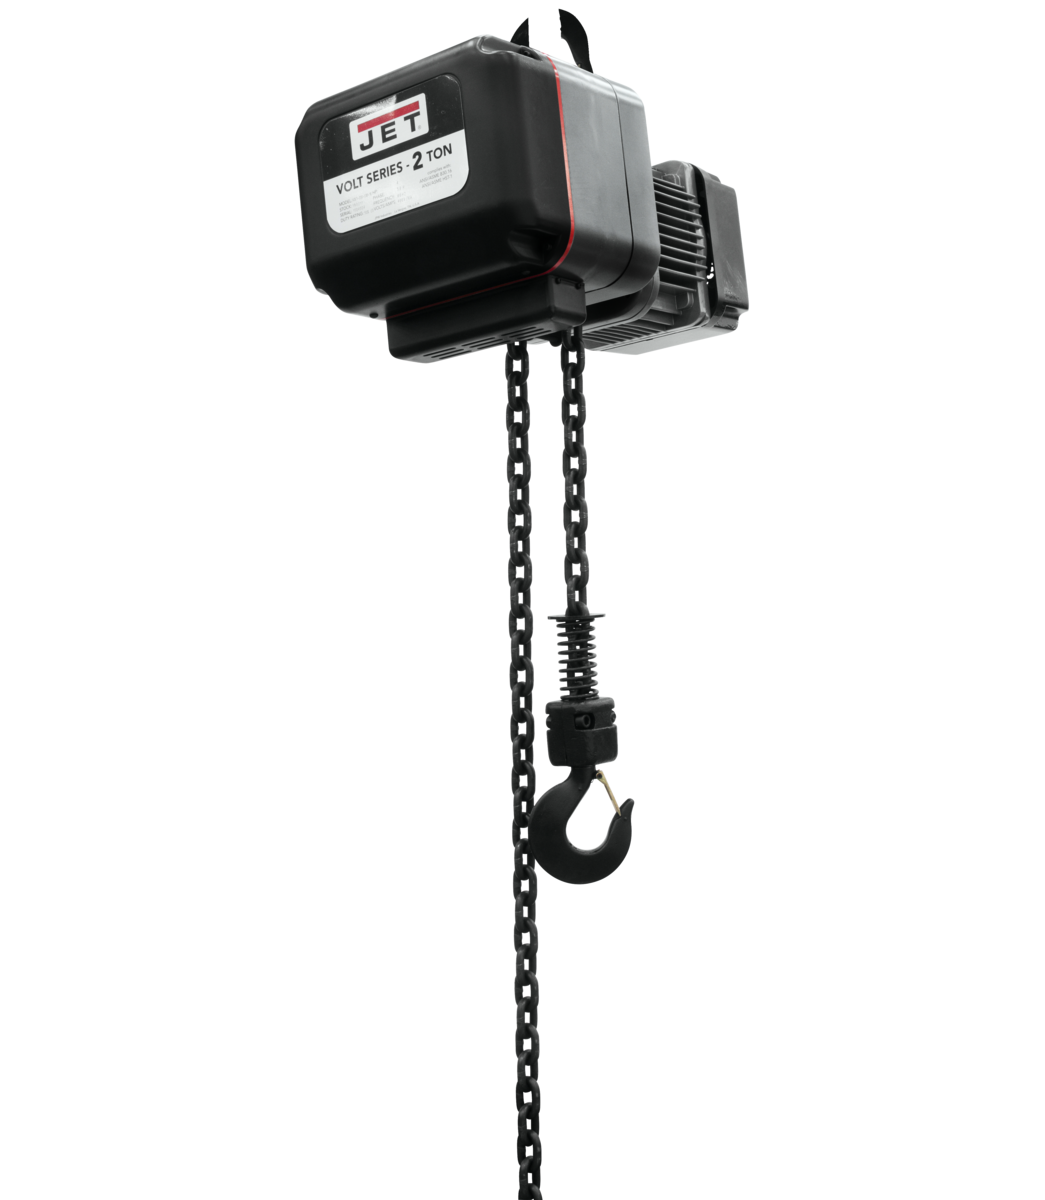 VOLT 2T VARIABLE-SPEED ELECTRIC HOIST 3PH 460V 15' LIFT